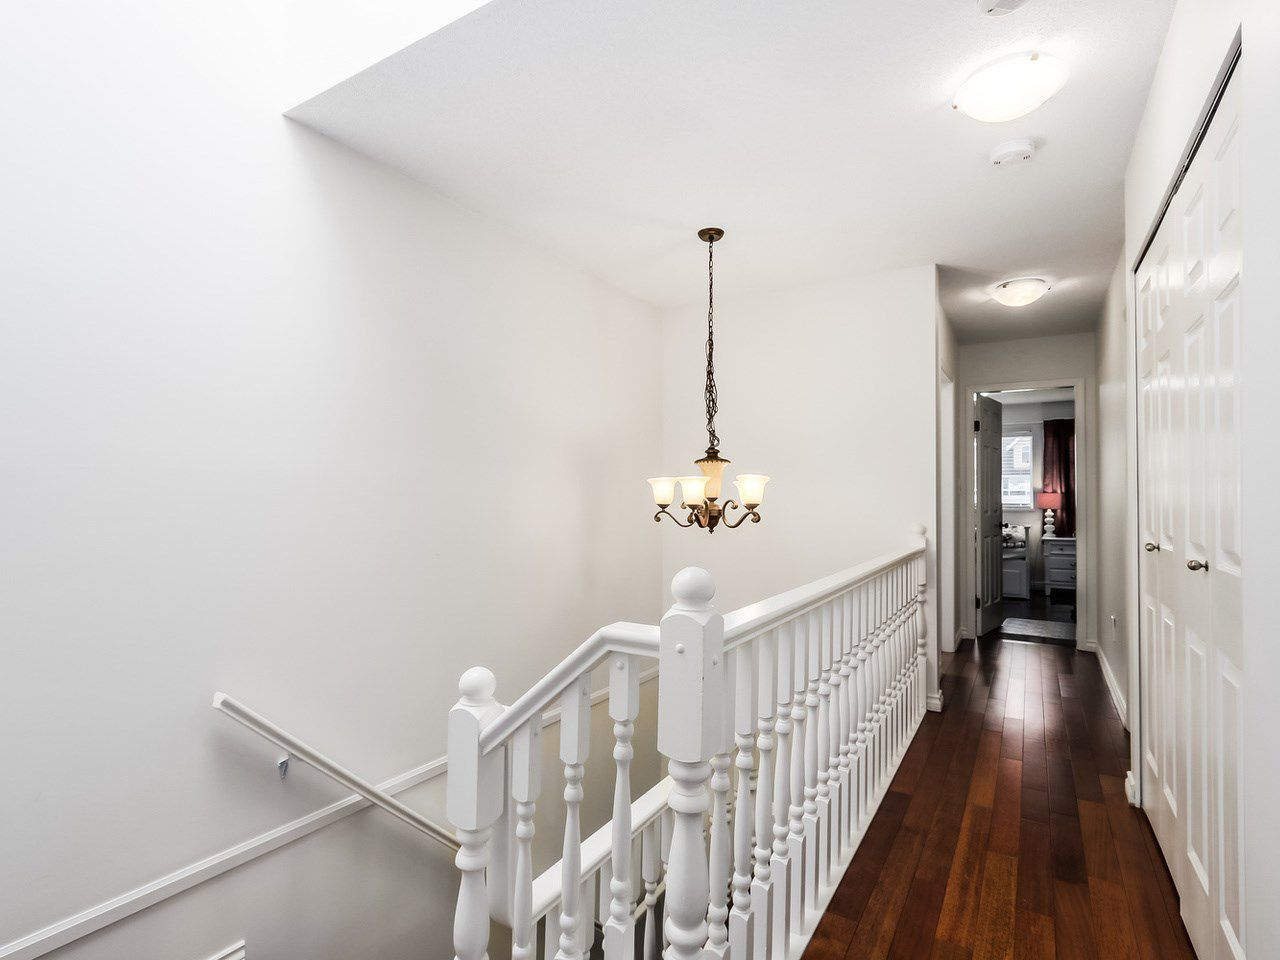 Photo 17: Photos: 2 269 E KEITH ROAD in North Vancouver: Lower Lonsdale House 1/2 Duplex for sale : MLS®# R2025742